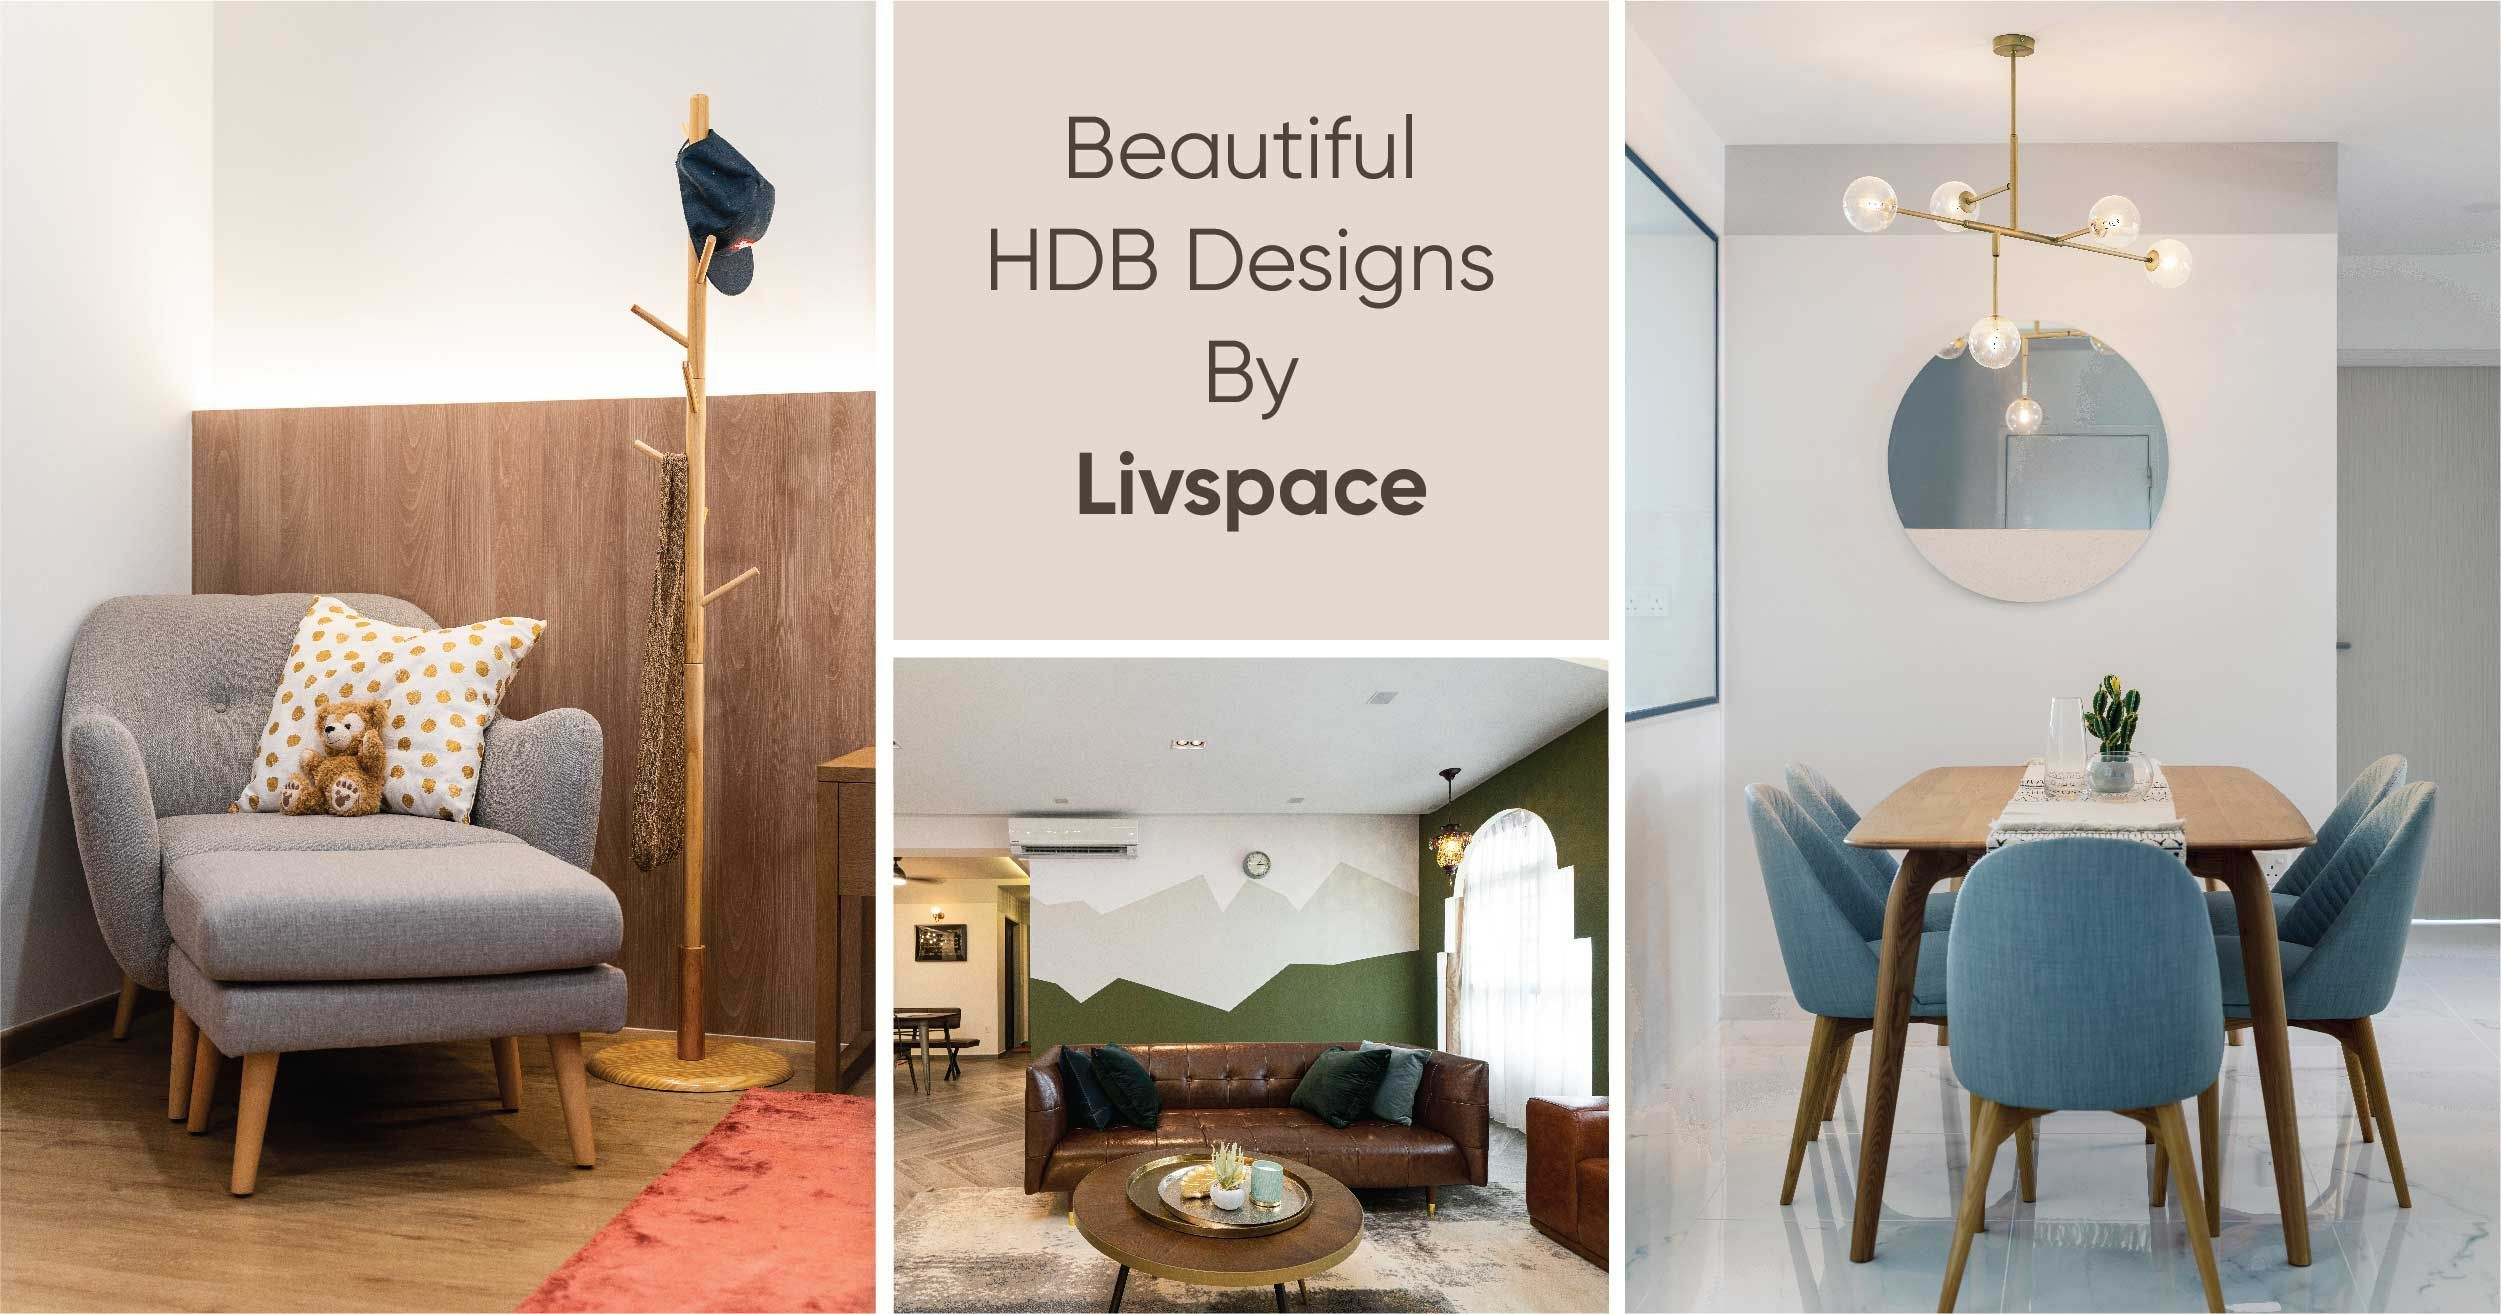 5 Stylish & Practical HDBs With Ideas to Steal